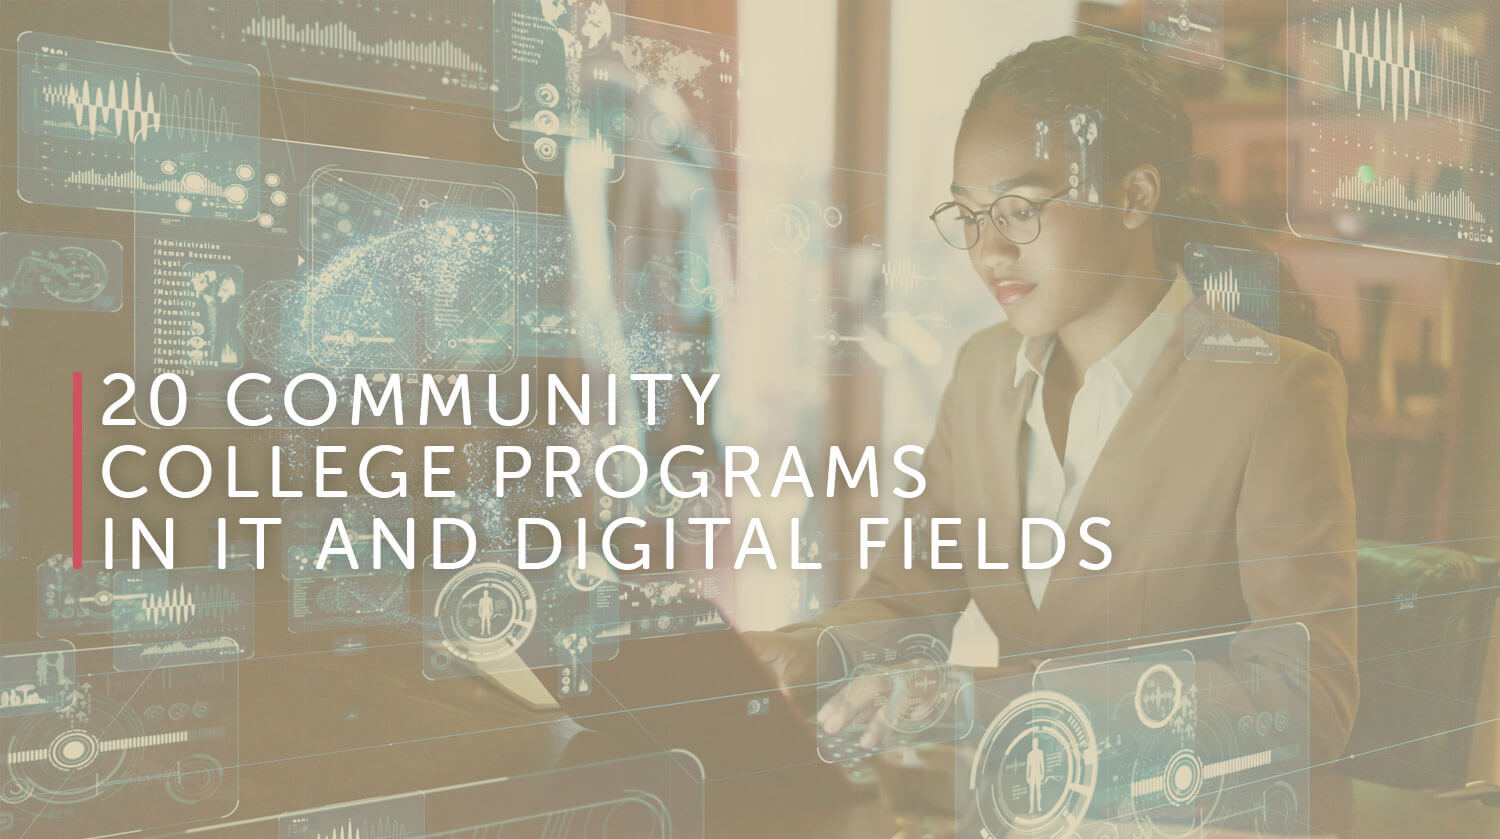 20 Community College Programs in IT and Digital Fields